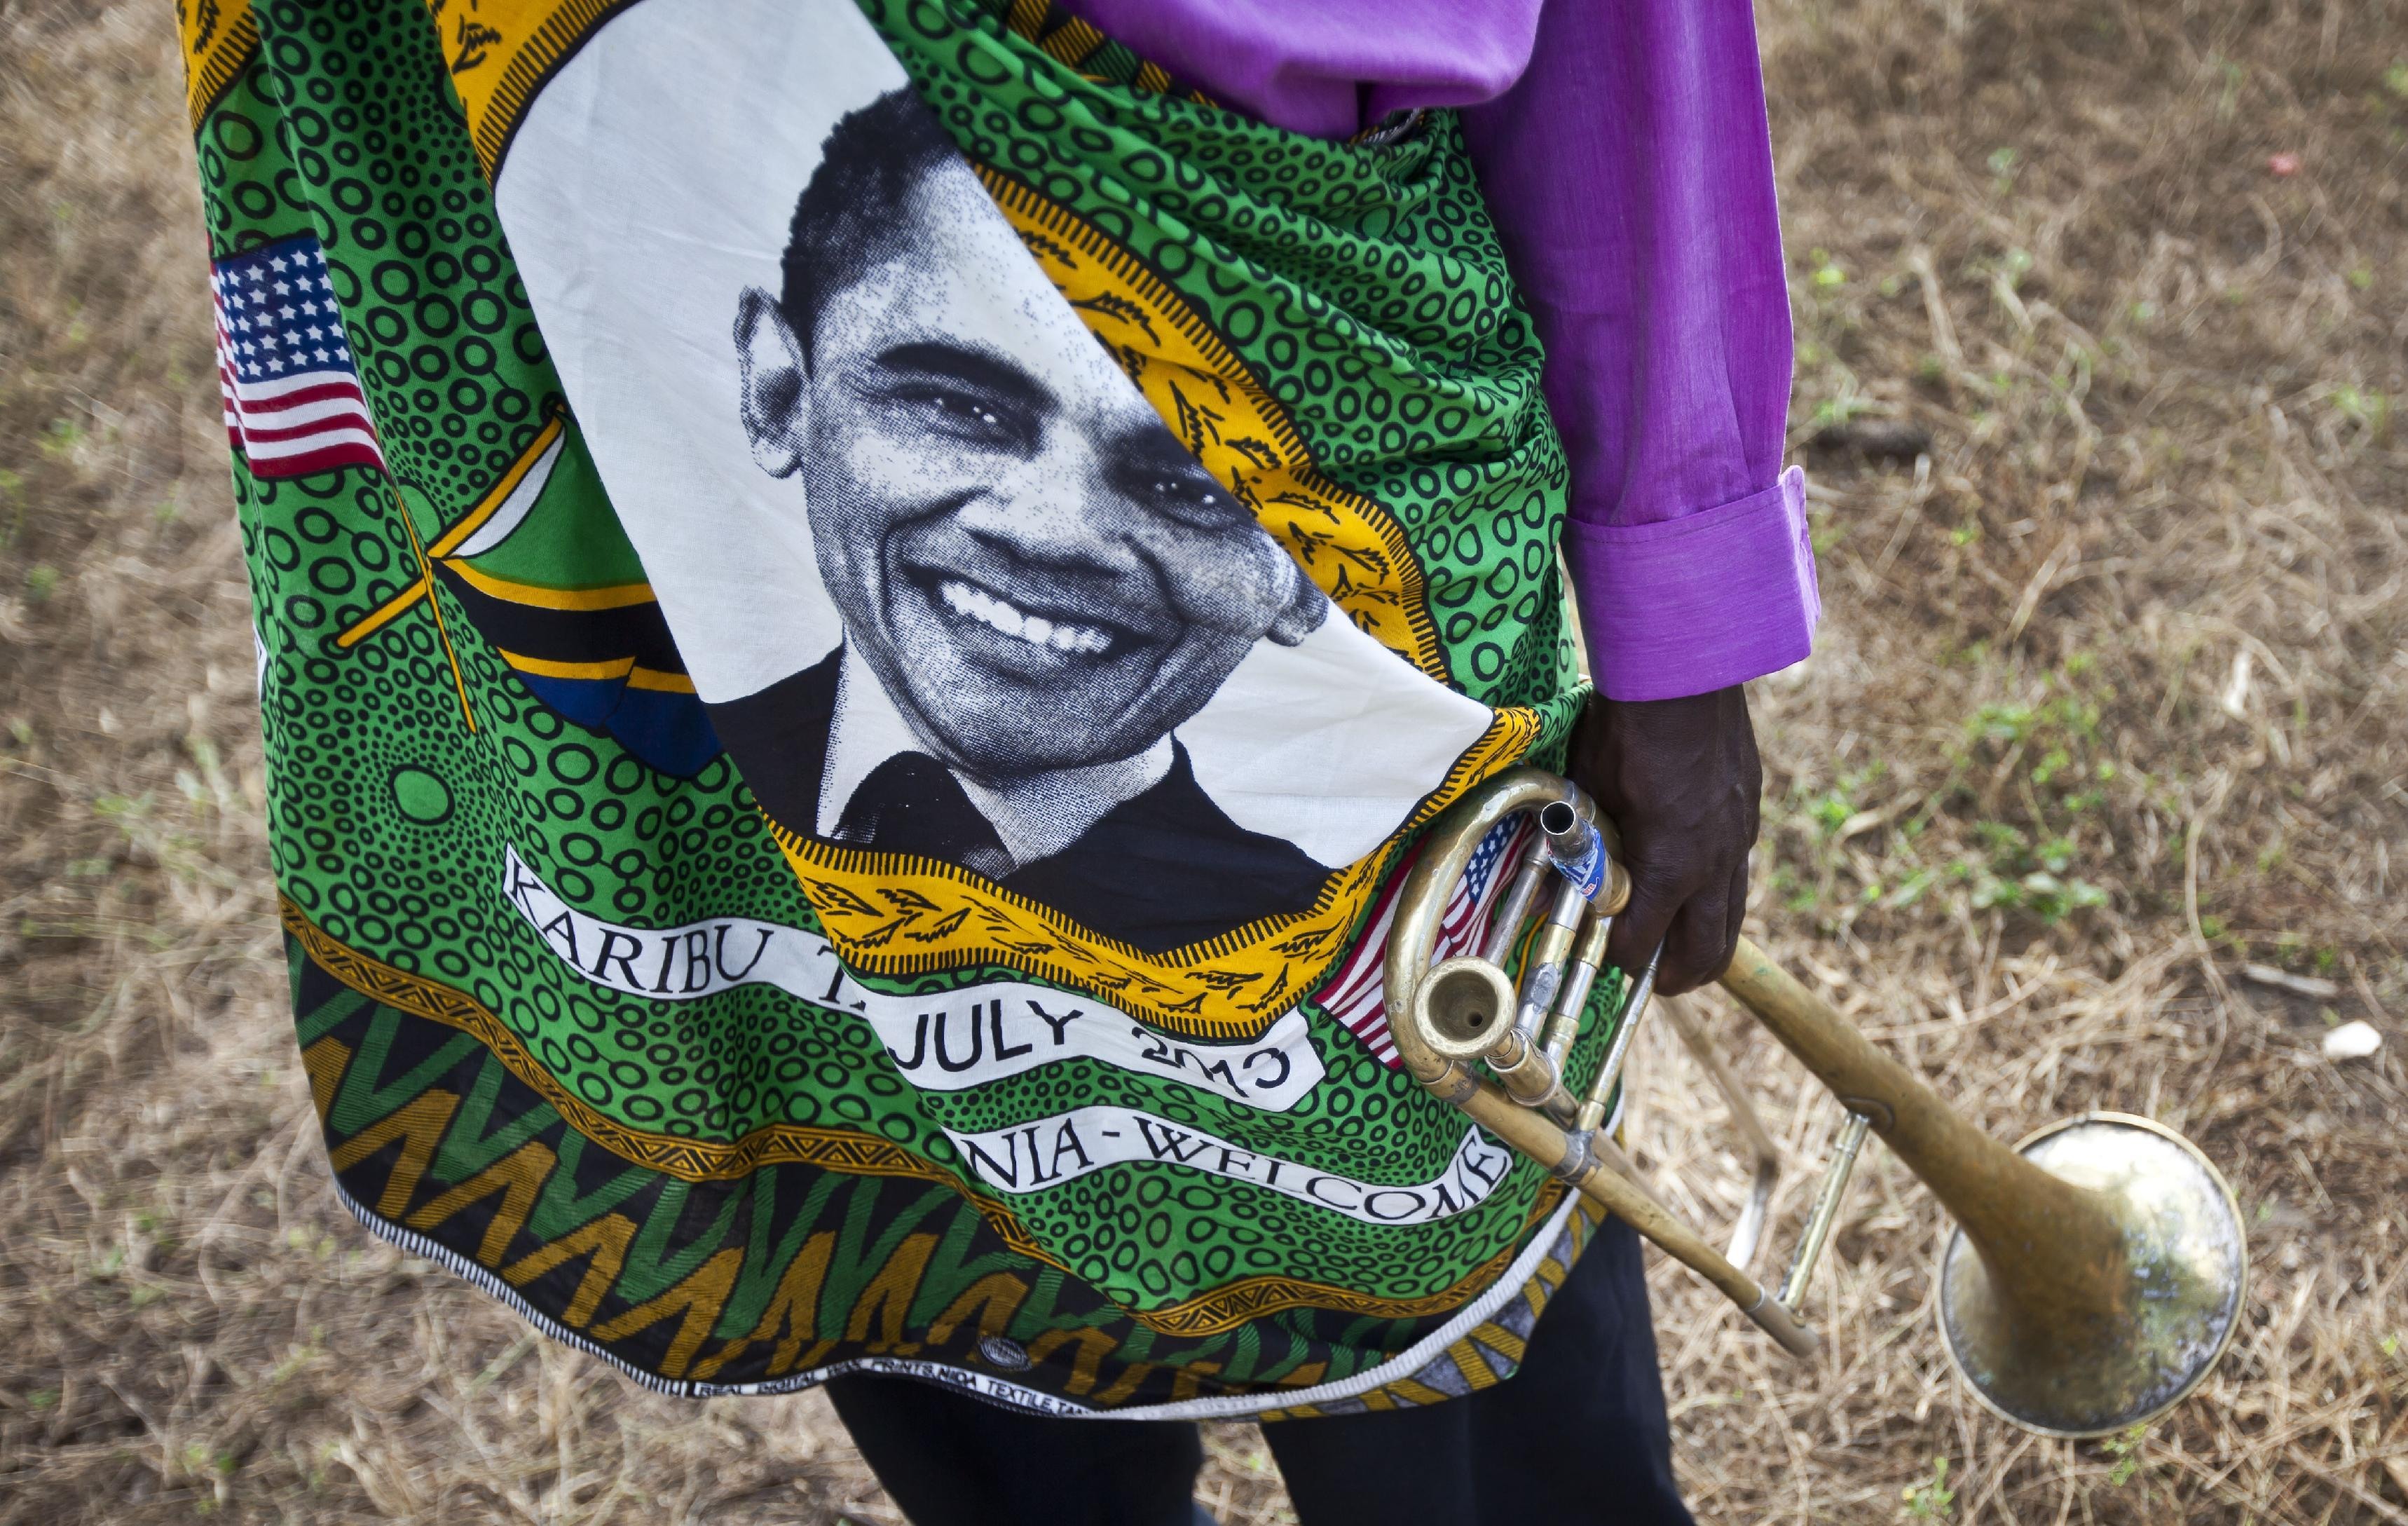 A member of the brass band that will welcome U.S. President Barack Obama stands on the road next to State House, wearing a shirt with the face of Obama, ahead of the meeting with Tanzanian President Jakaya Kikwete, at State House in Dar es Salaam, Tanzania Monday, July 1, 2013. The Democratic president was to fly Monday into Dar es Salaam, Tanzania, the last stop on a weeklong tour of Africa that wraps up Tuesday, while his Republican predecessor coincidentally also plans to be there for a conference on African women organized by the George W. Bush Institute. (AP Photo/Ben Curtis)